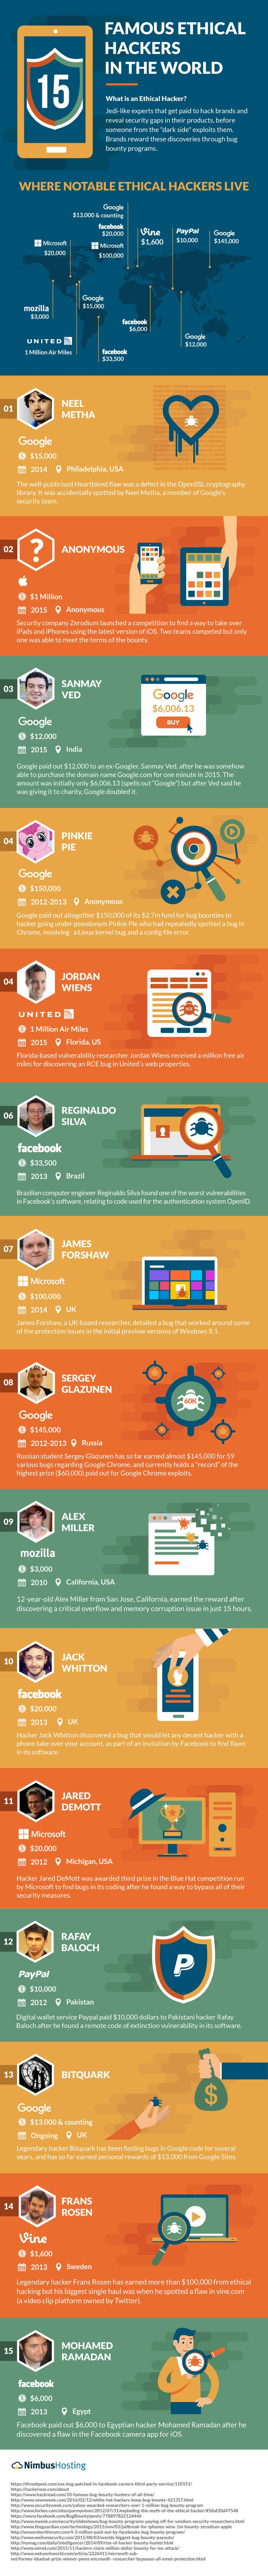 15 Biggest Ethical Hacker Stories In The World infographic